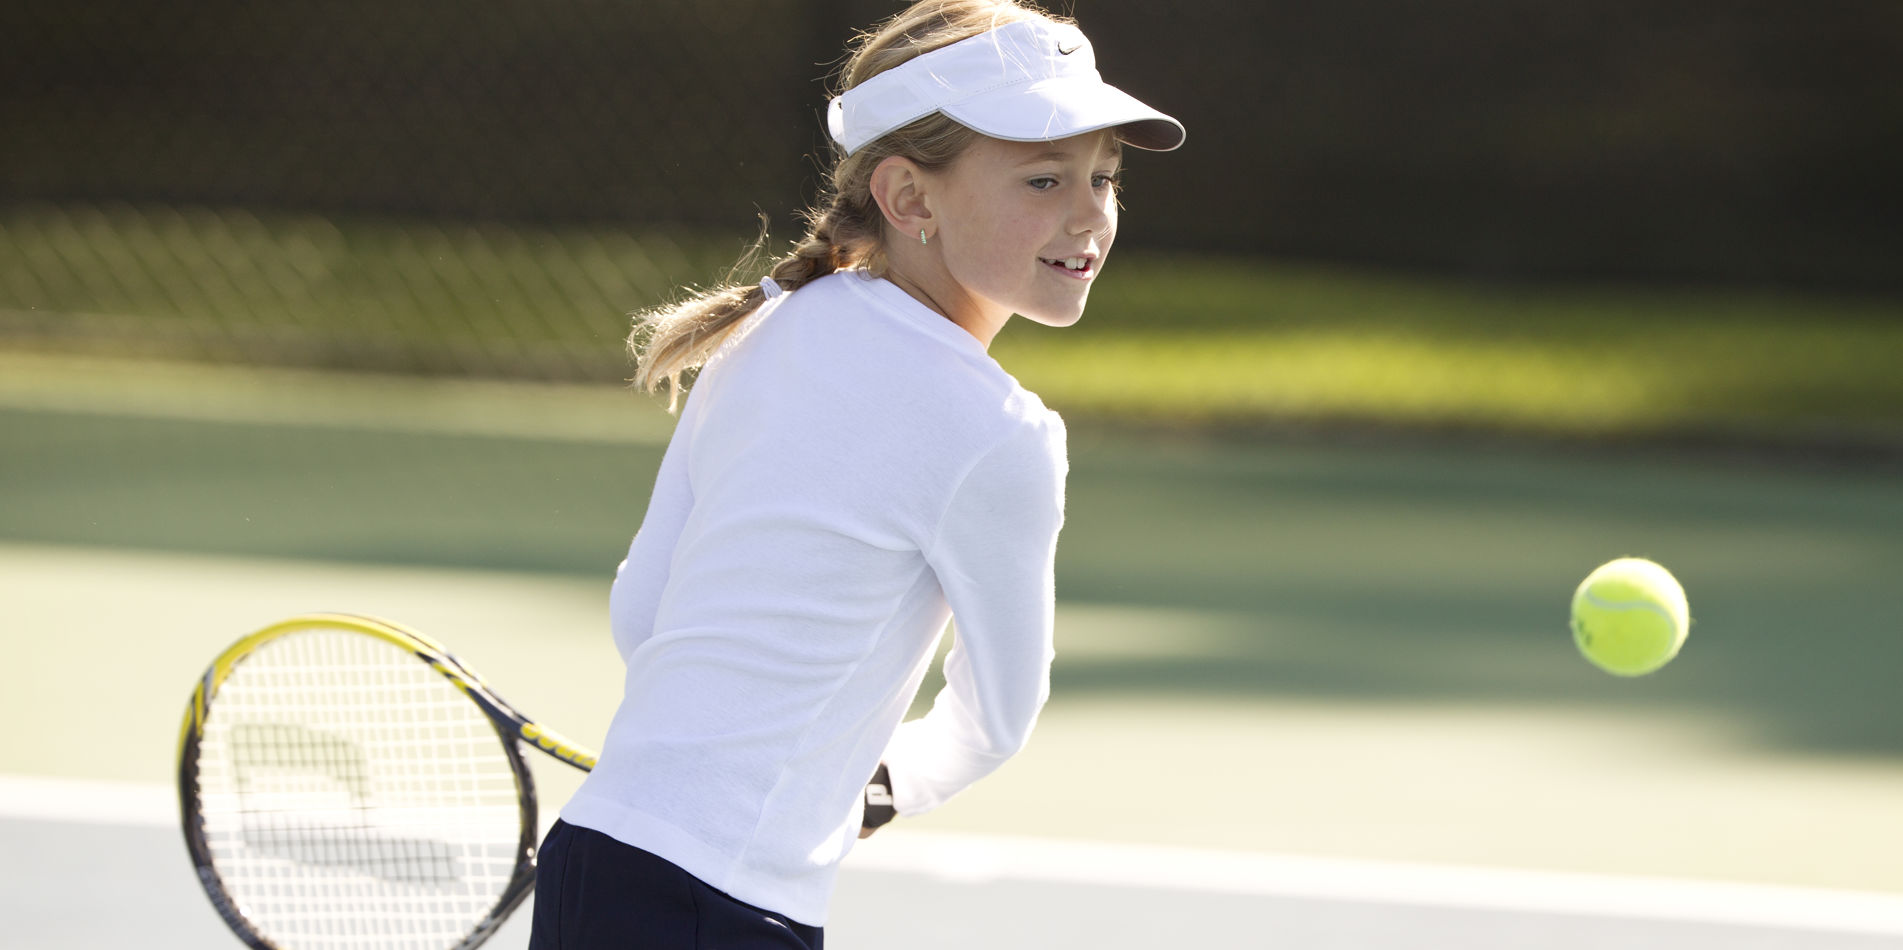 Carmel Valley Ranch_Activities_Tennis_girl playing tennis